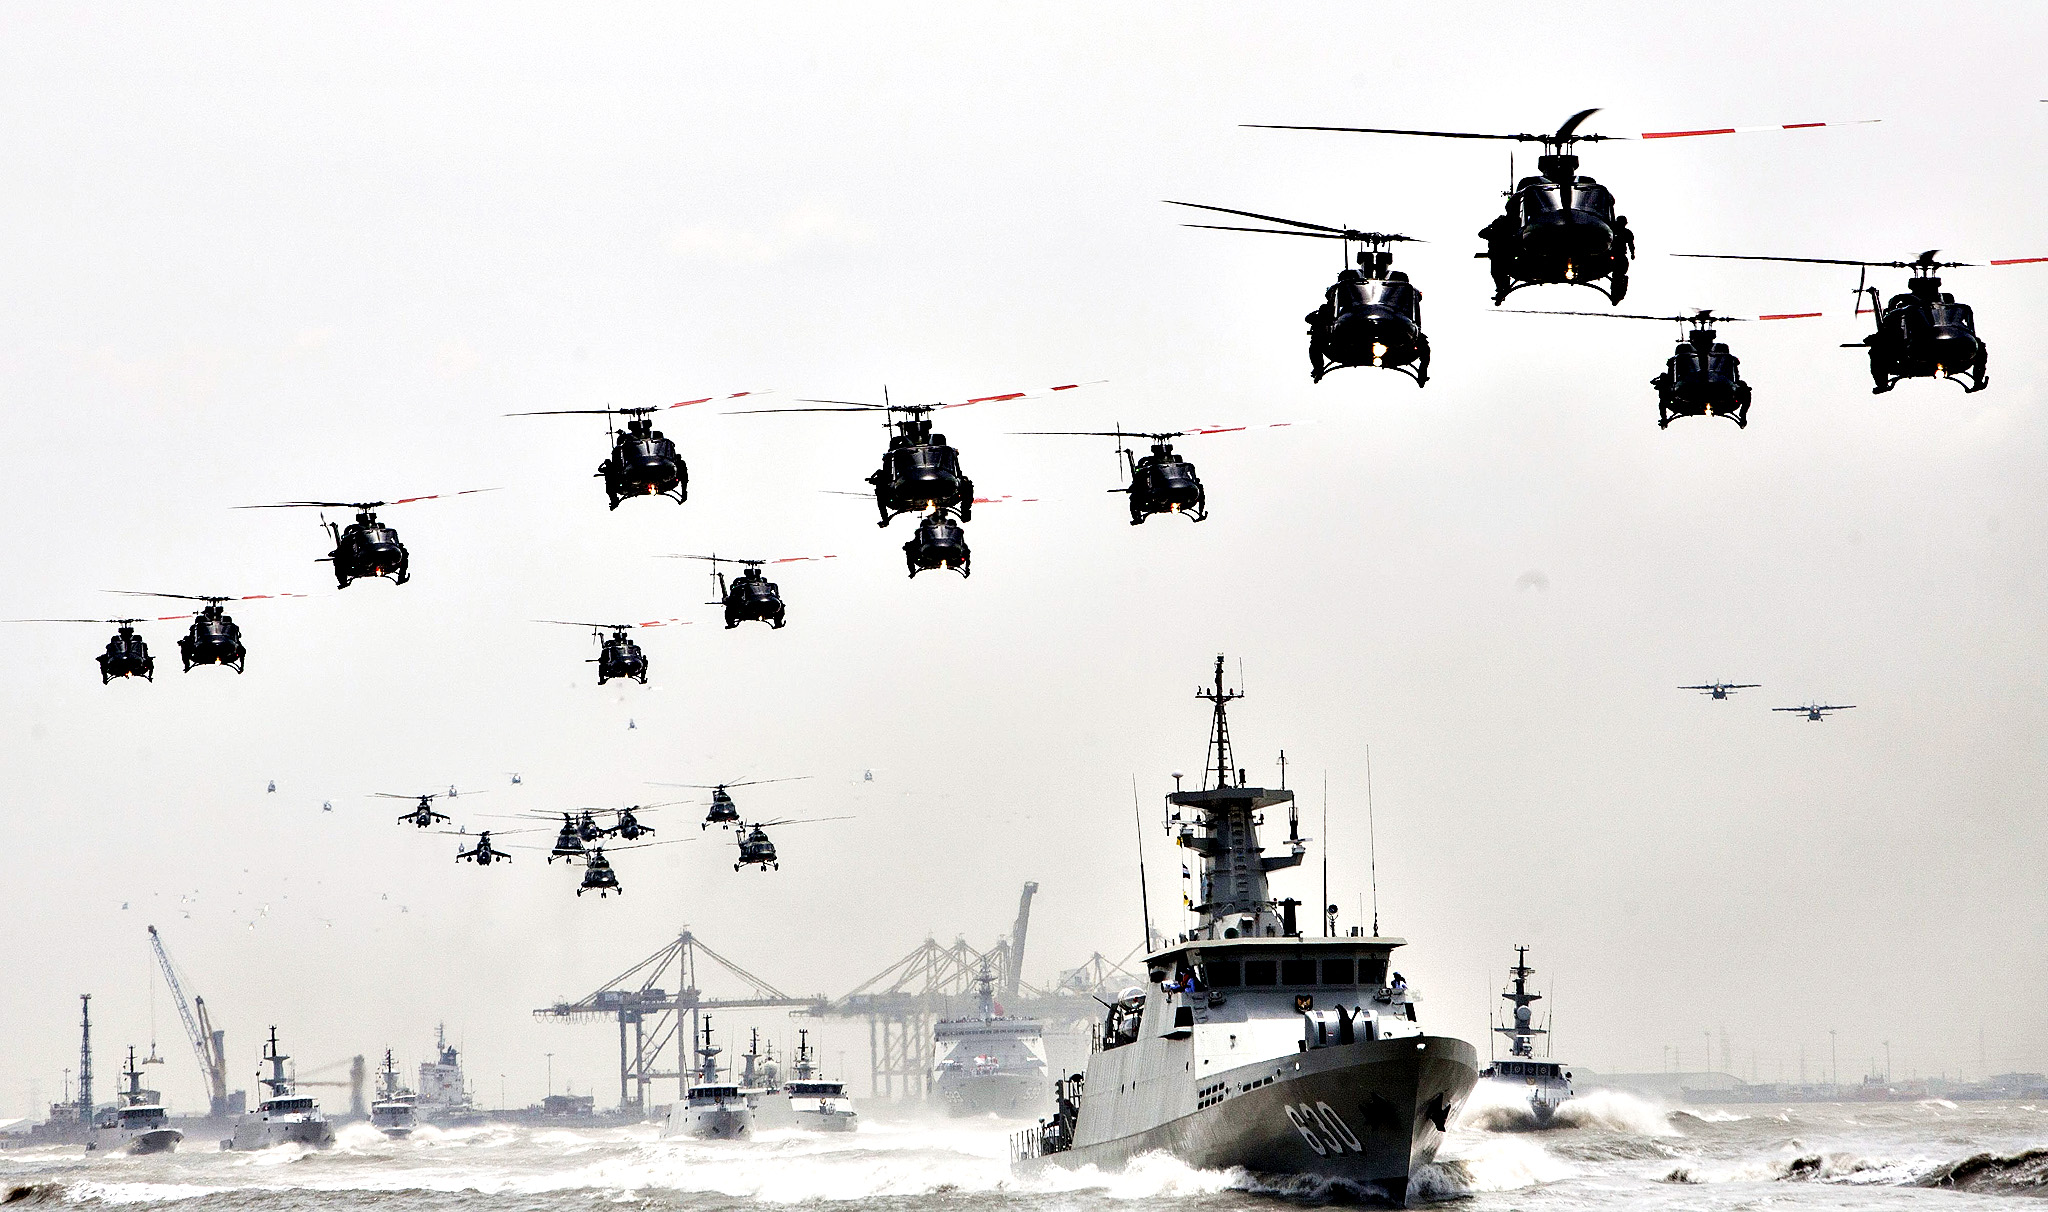 Indonesian Apache helicopter fly in formation over warships during celebrations of the 69th anniversary of the Indonesian Armed Forces (TNI) in Surabaya, East Java, Indonesia, 07 October 2014. More than 20,000 military personnel, 239 units of military aircrafts, 42 units of military ships and 149 units of combat vehicles participated during the celebrations.